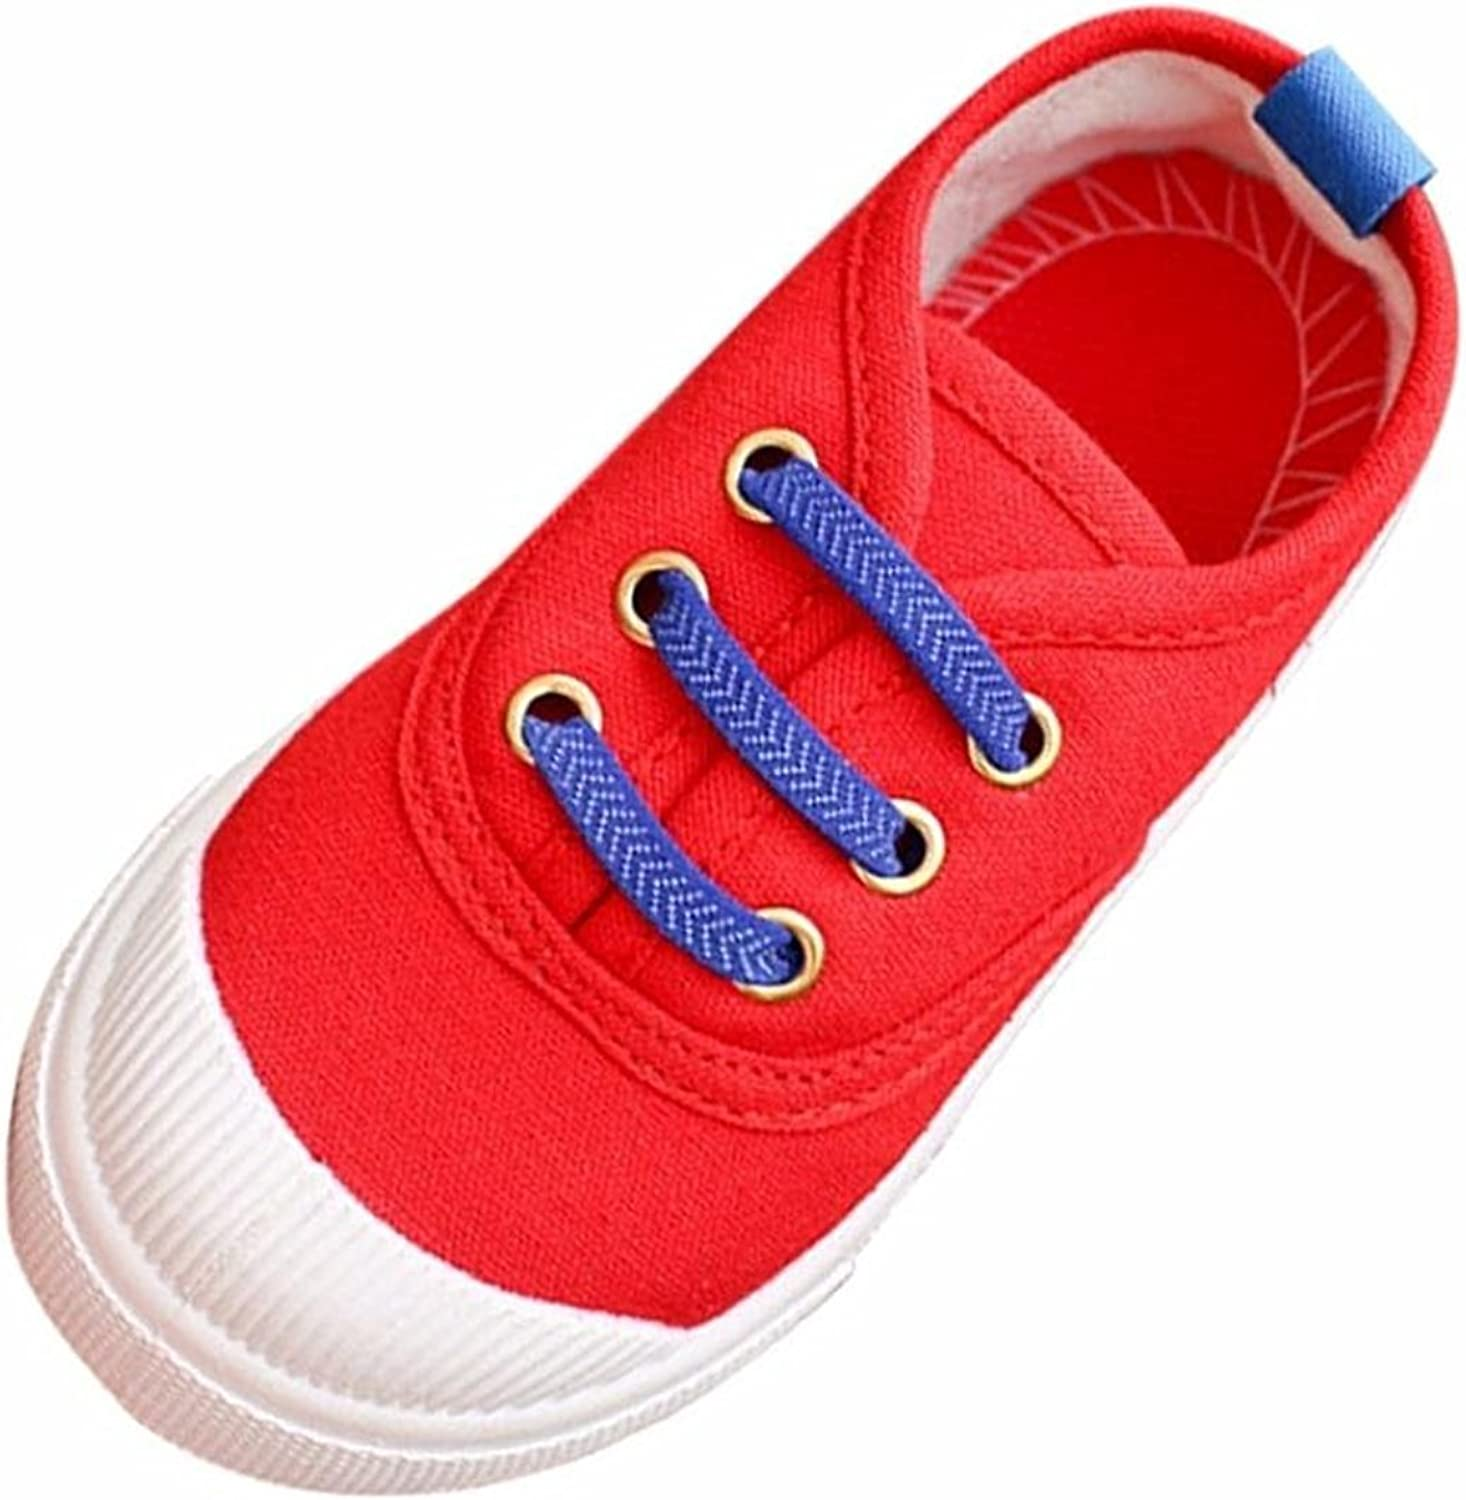 aged 2-2.5 years 21 , Red Muium Toddler Infant Baby Kids Boys Girls Fashion Candy Color Canvas Shoes Sneakers Boots For 2-6 Years Old